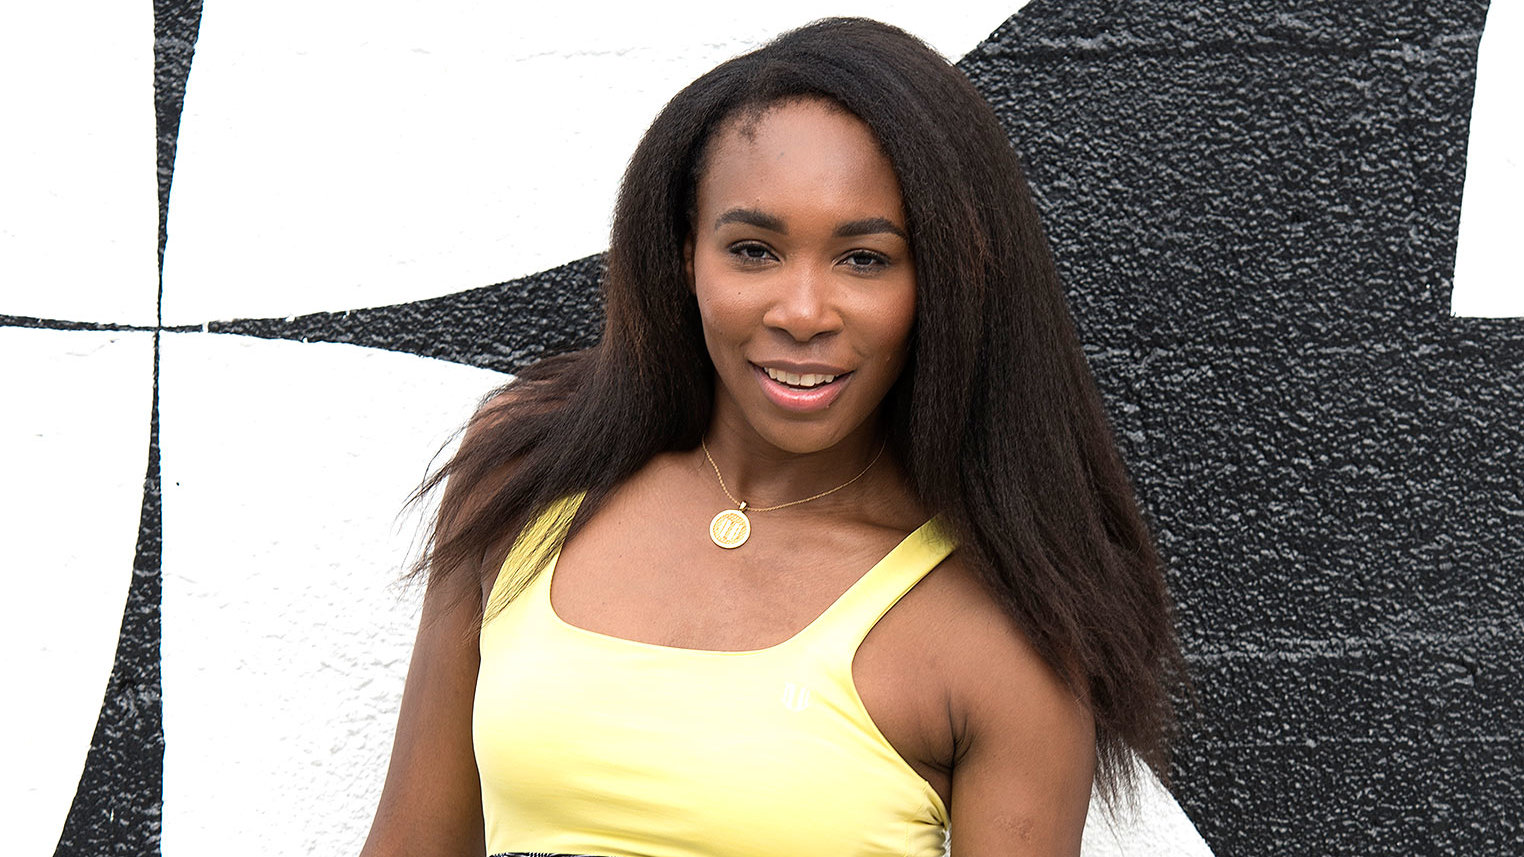 Venus Williams Describes Her Workout Routine and Eating Habits: 'It's My Job to Be Healthy'